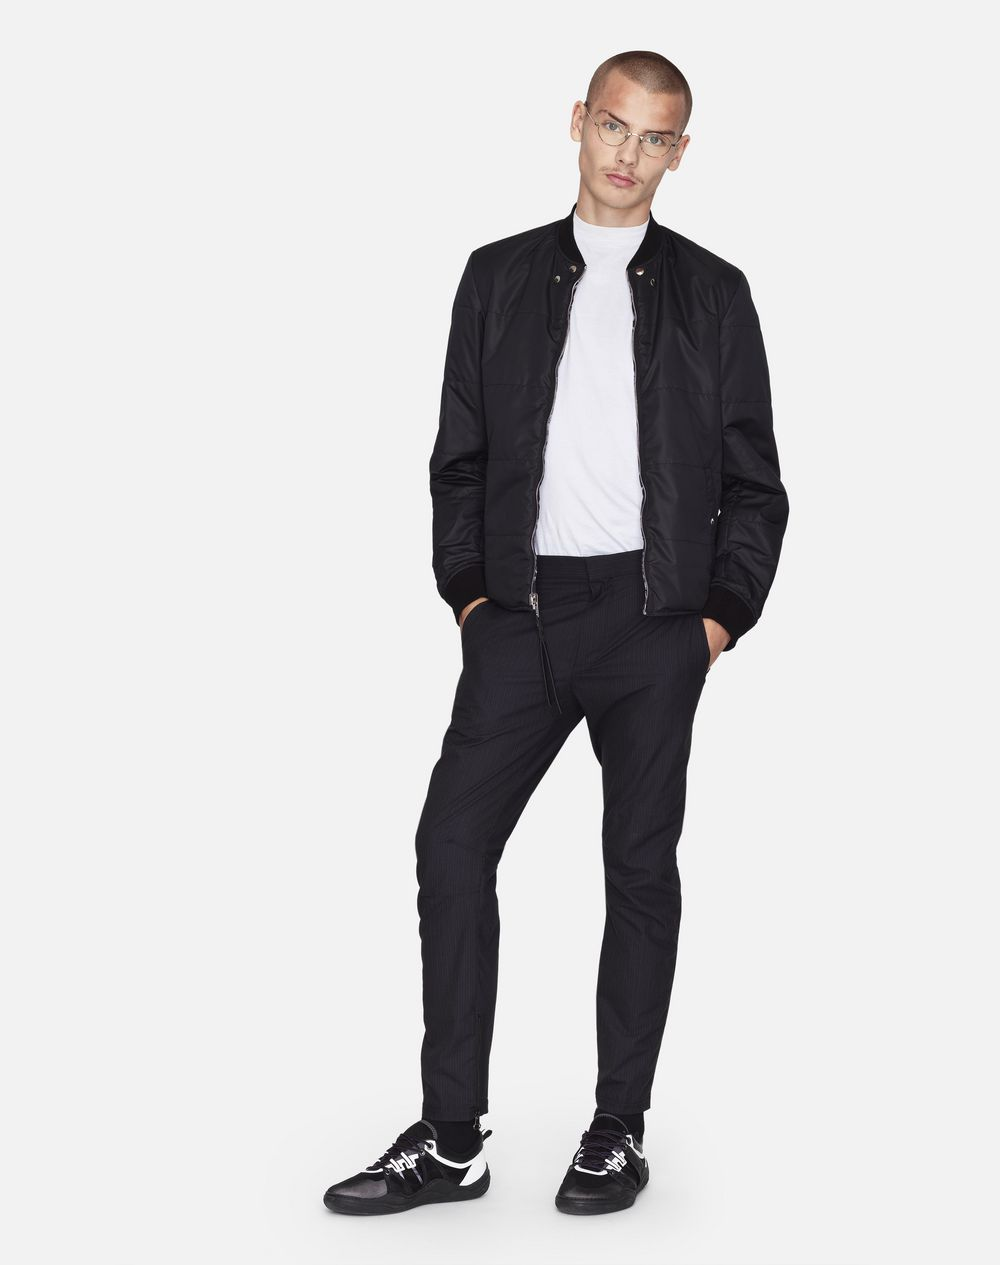 BIKER PANTS WITH ROUNDED SEAMING - Lanvin